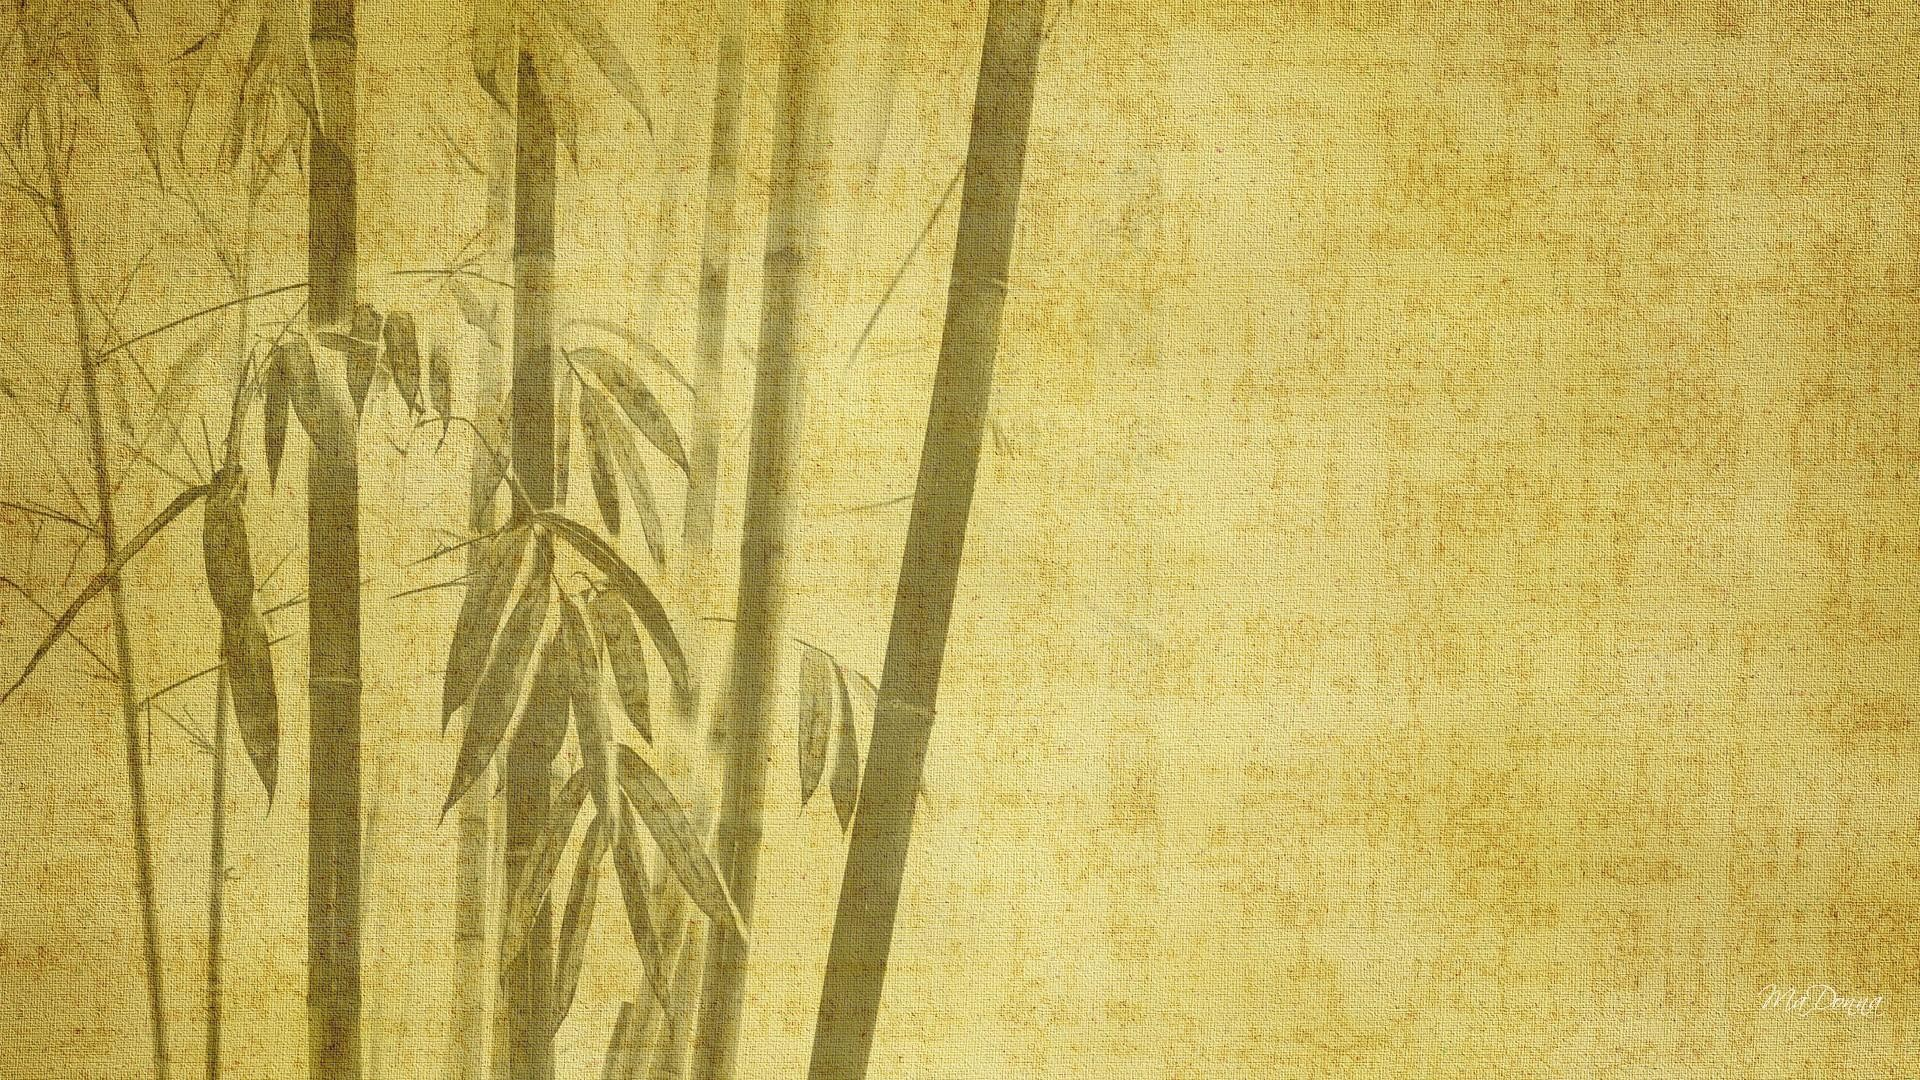 1920x1080 Bamboo HD Desktop Wallpapers for Widescreen, High Definition .